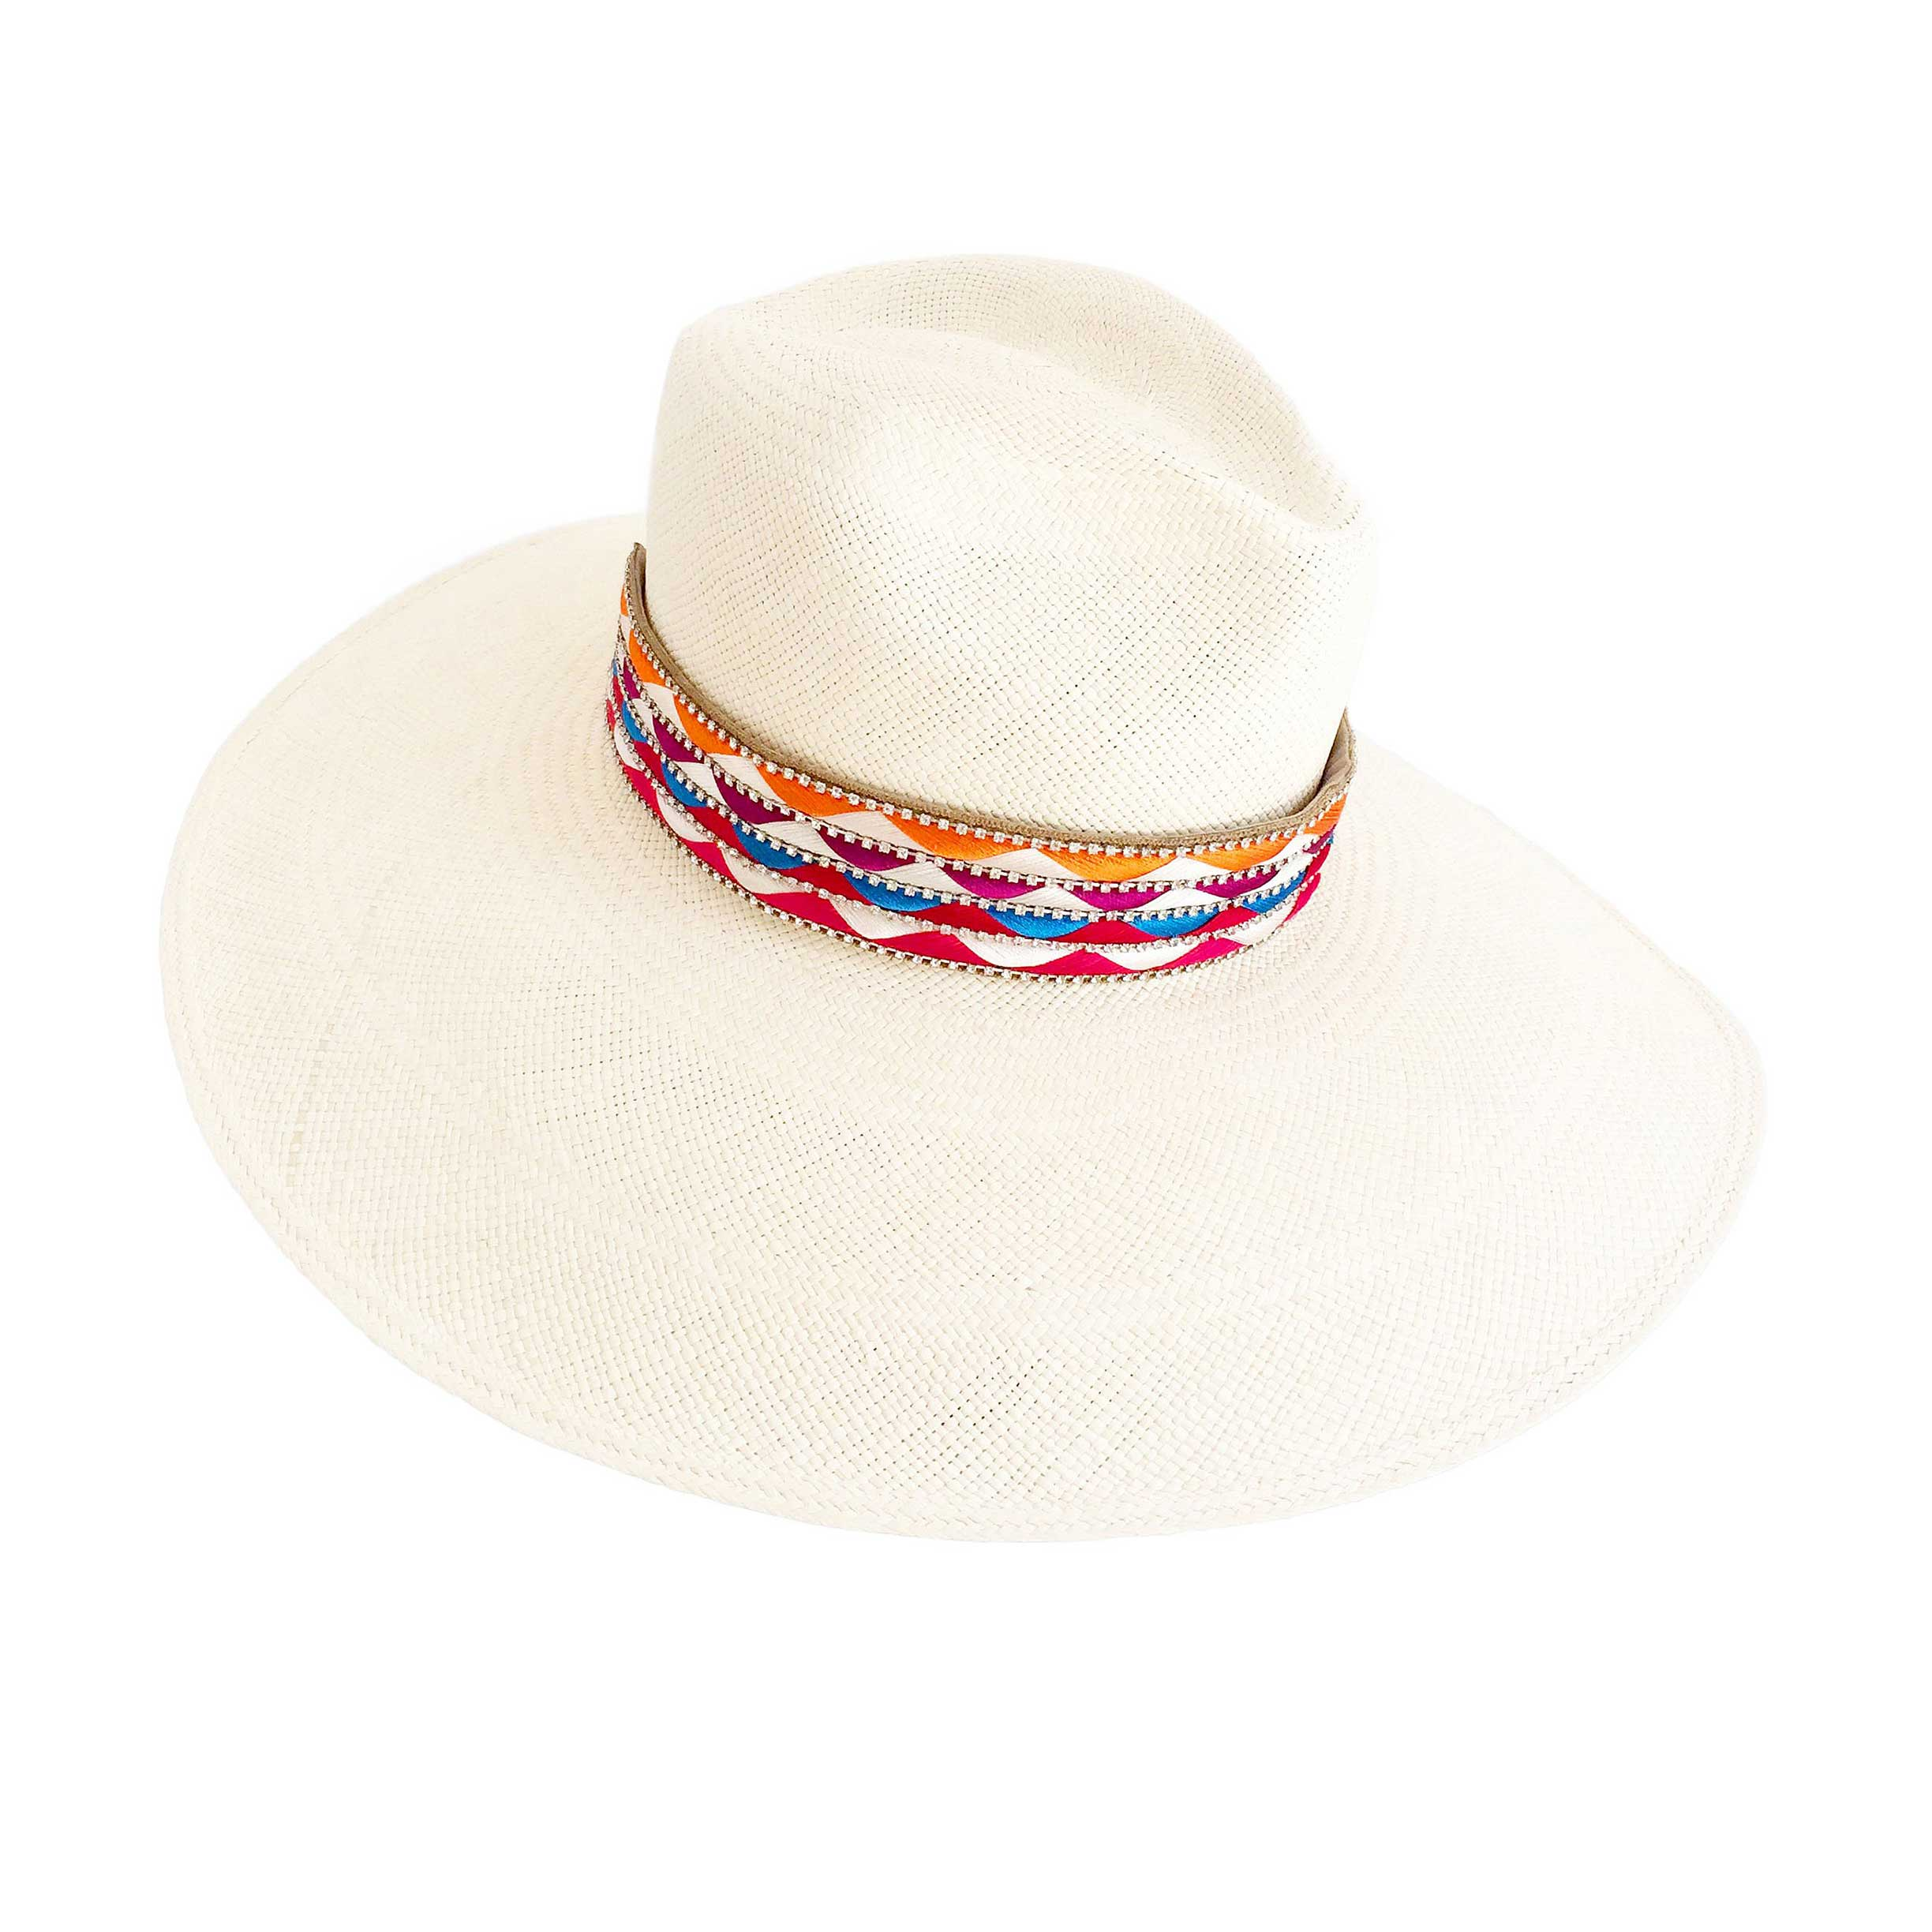 The Mallorca Blue Woven Panama Hat